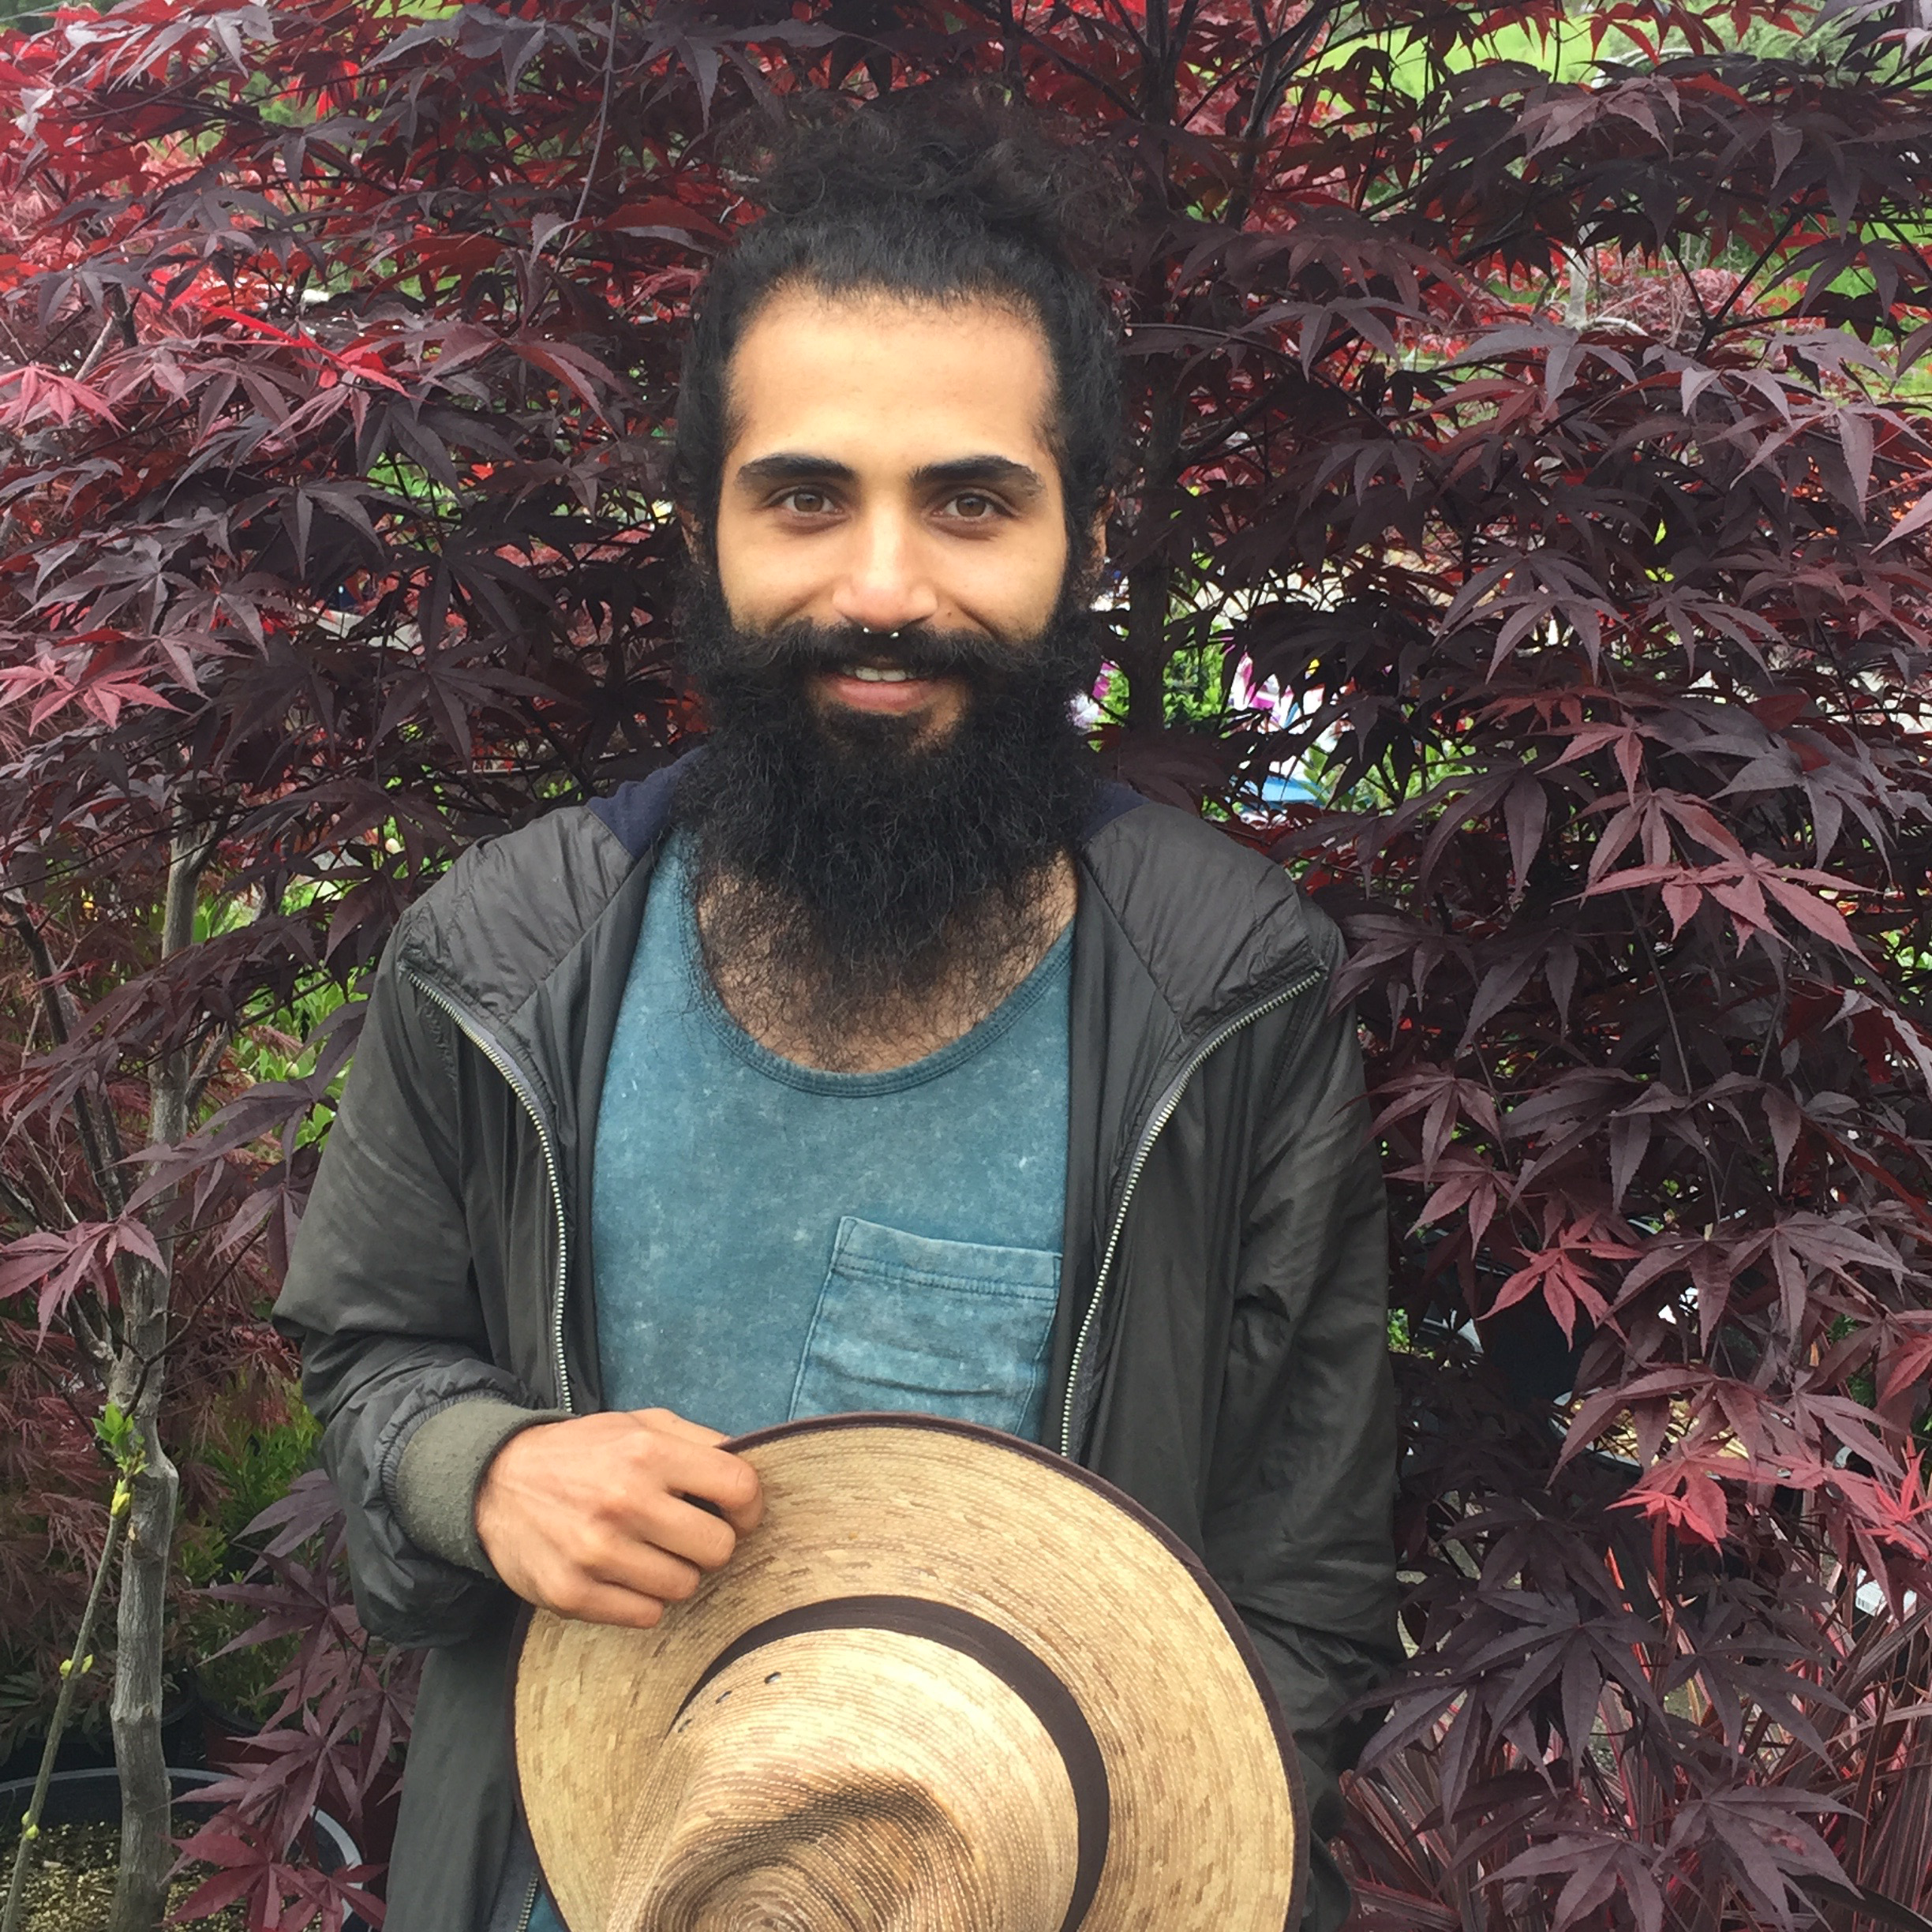 Sam Tajik   Sam recently relocated to the Bay Area from Iran. His numerous talents include carpentry, painting, and playing the harmonica! He is the nursery's grounds keeper, making sure our plant material is cared for and the facilities maintained.